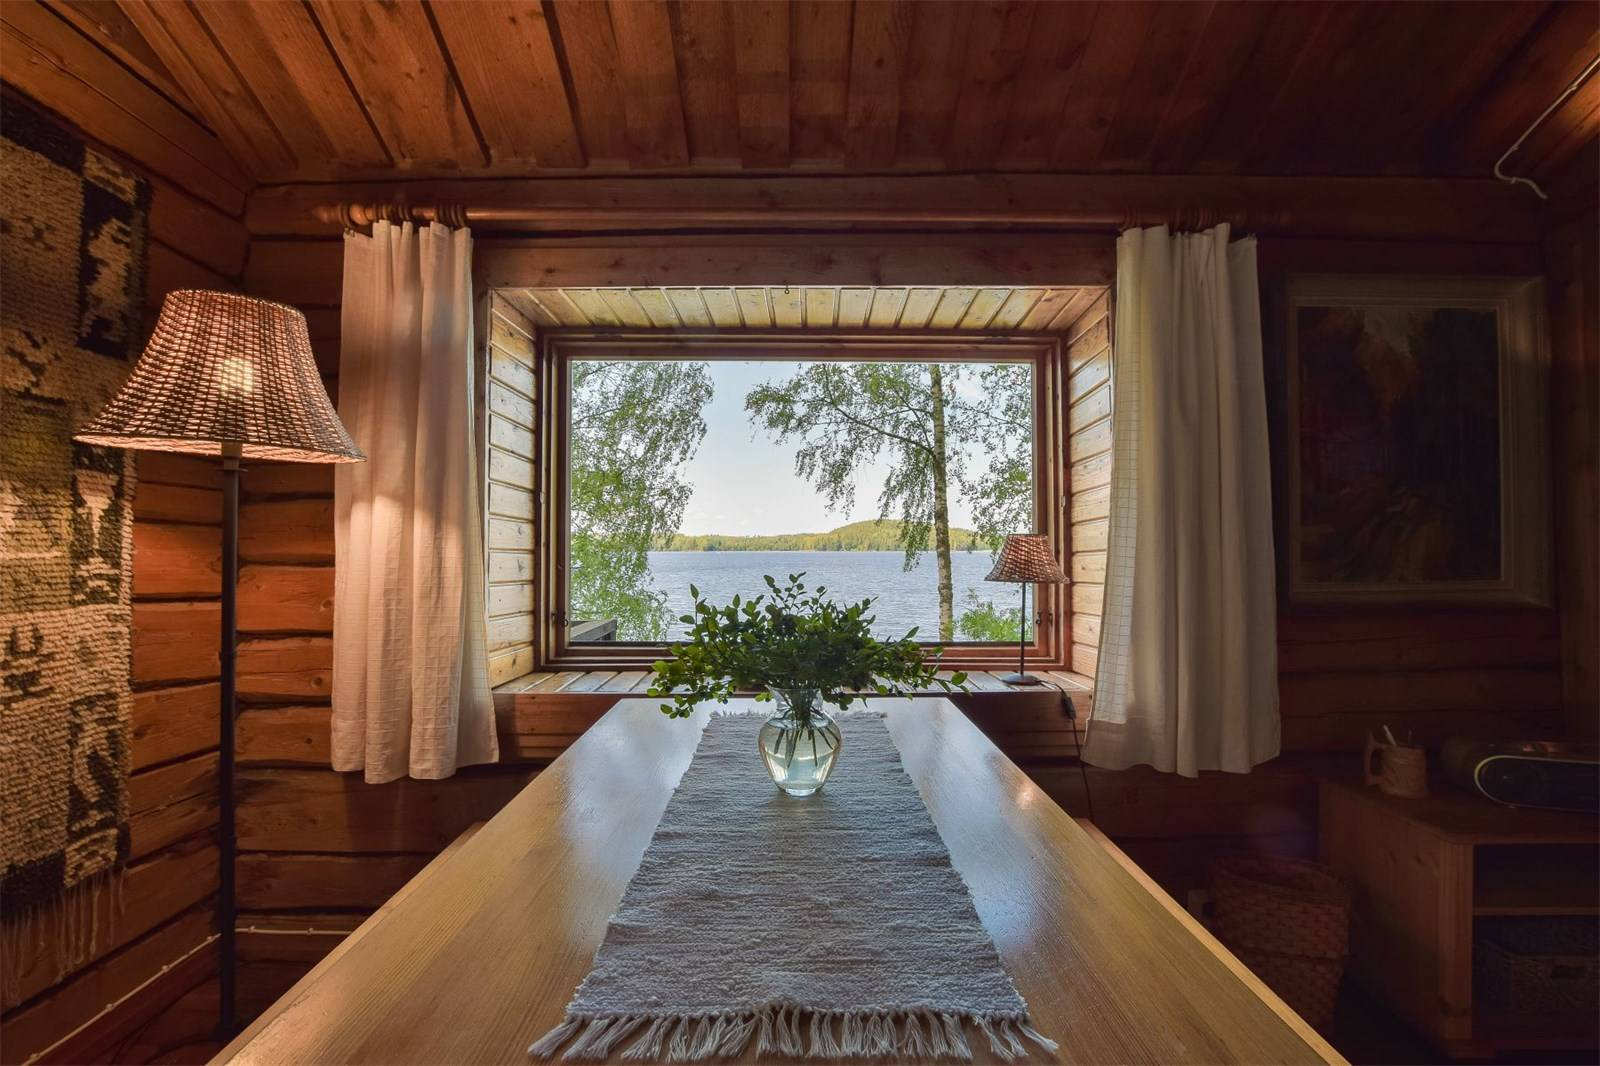 finland, cabin, finnish, lakefront, lake, vacation, wood, window, curtains, vase, hygge, cozy, for sale, real estate, helsinki, summer, house, country, view, water, trees